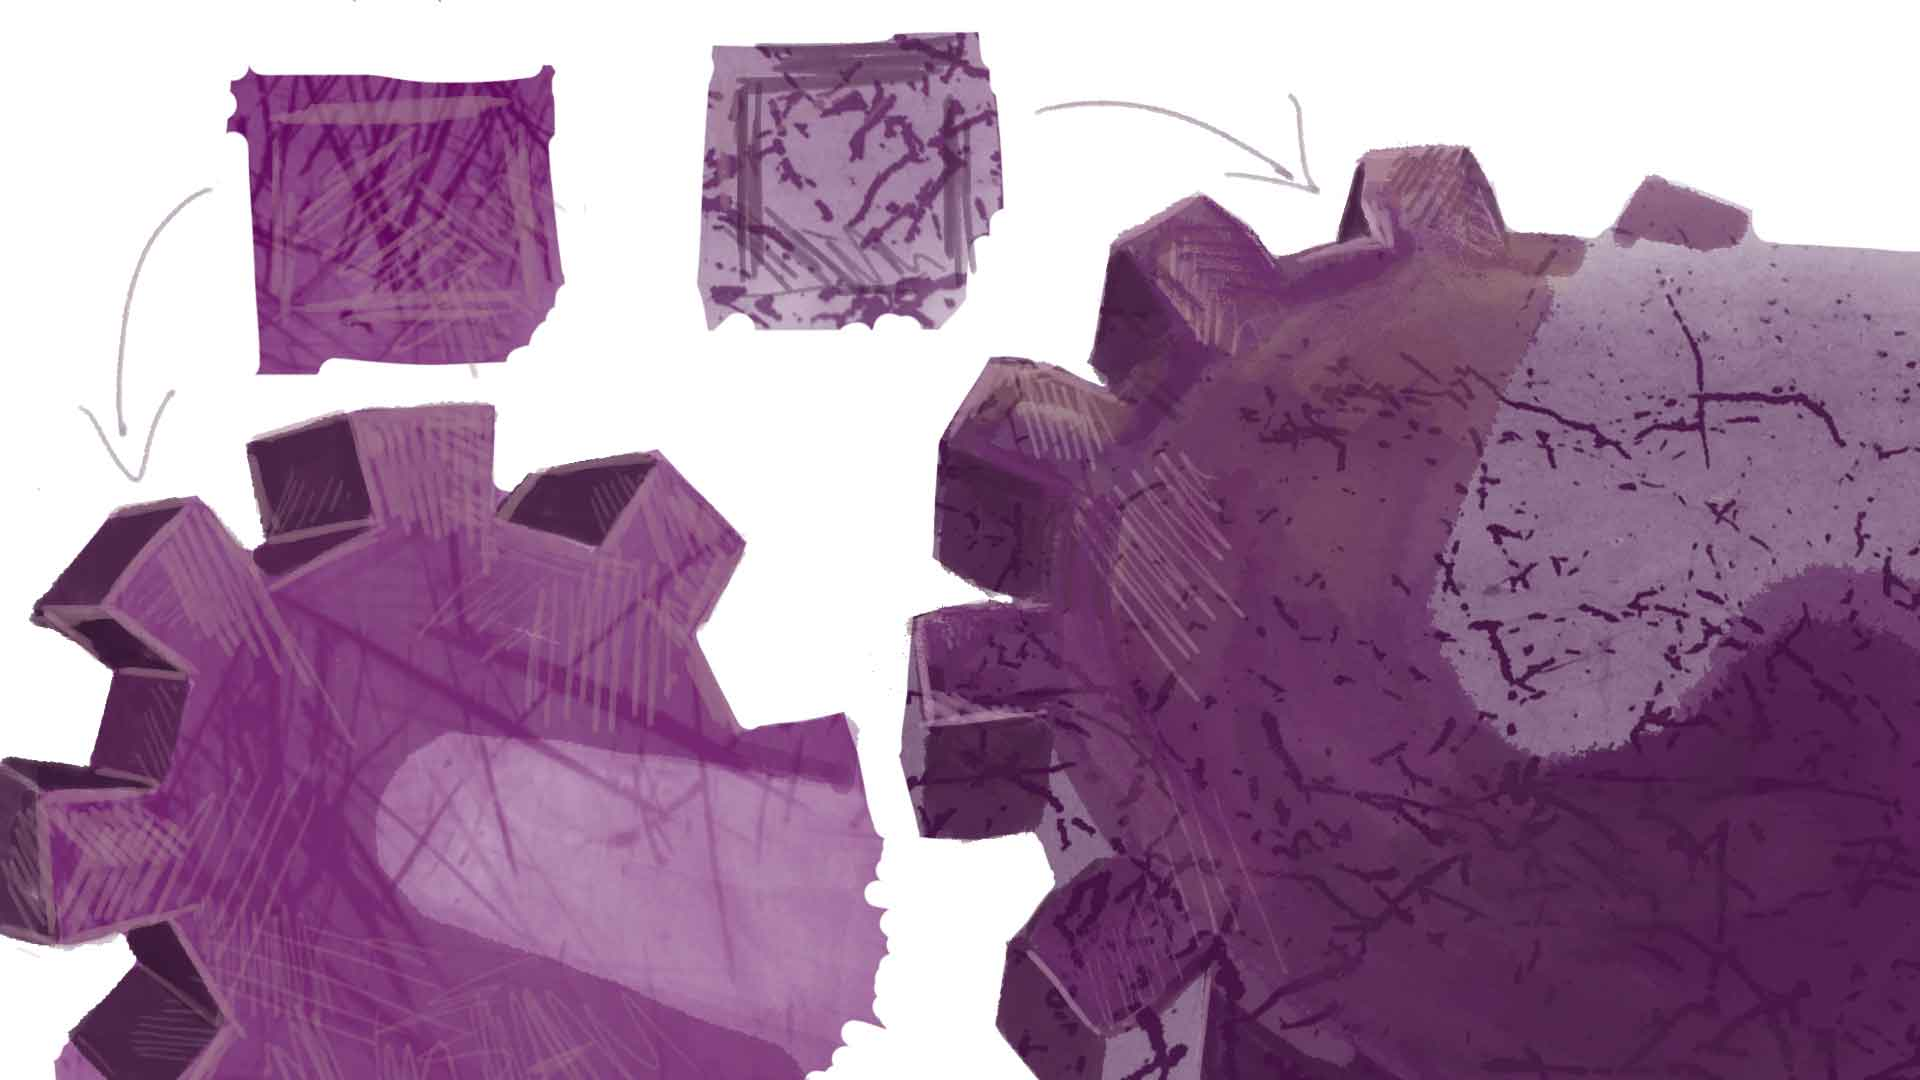 Metal scratchy texturing on drawing of purple cogs